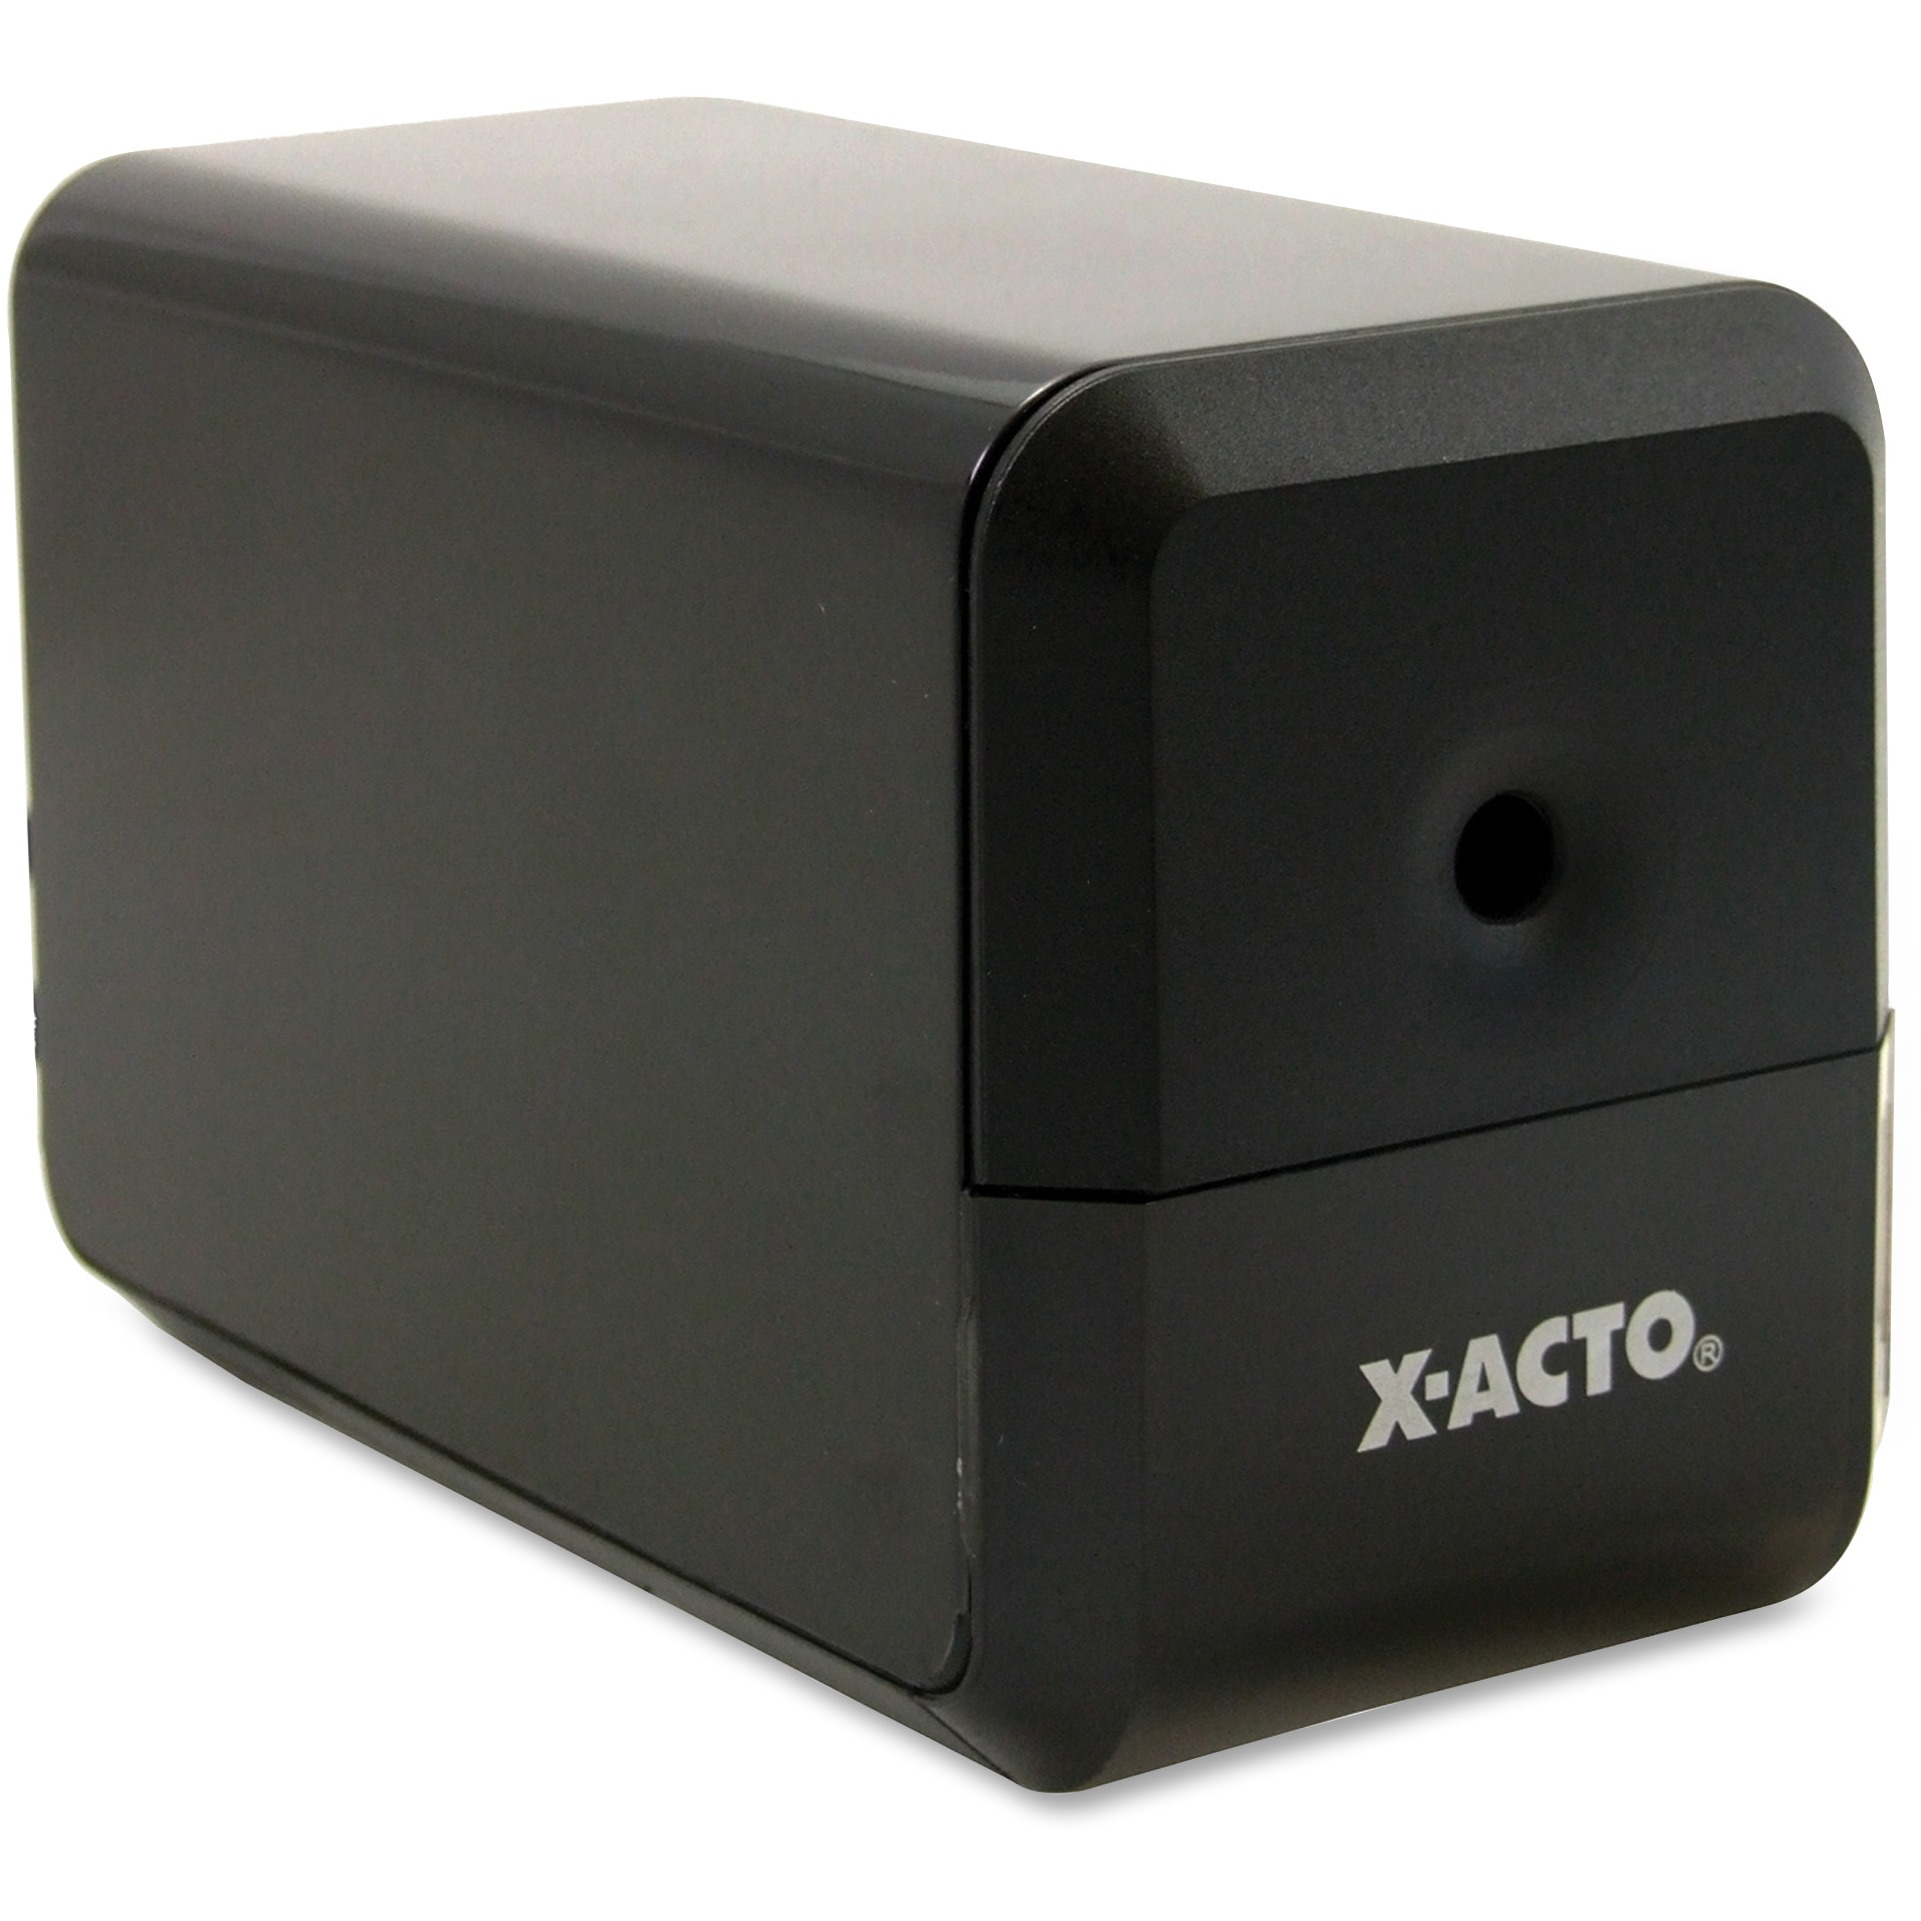 1800 Series Electric Pencil Sharpener by X-ACTO